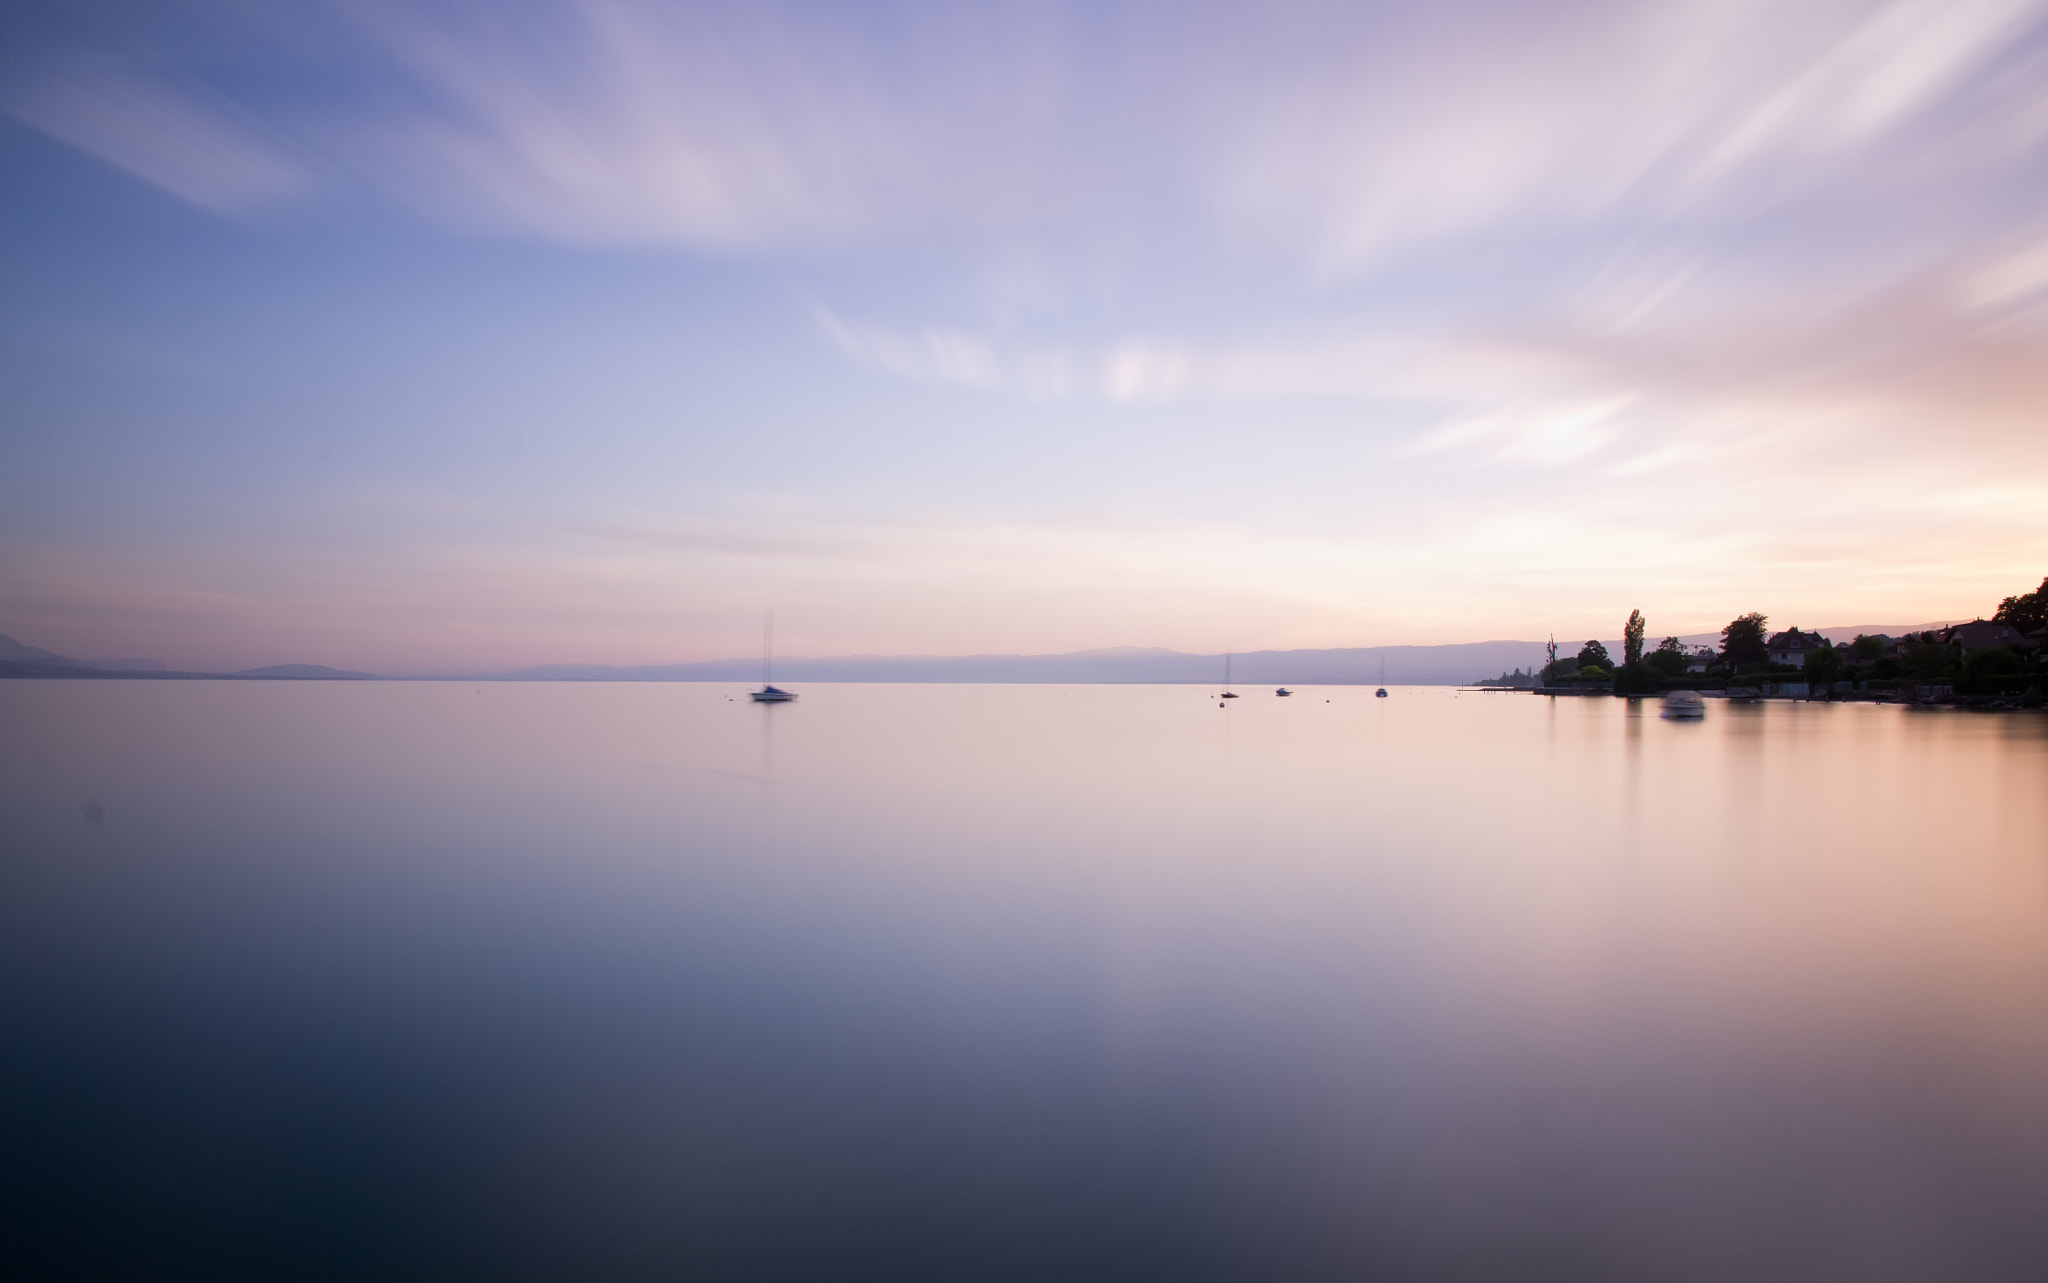 Photograph Lac Léman 2 by Charles DELEPINE on 500px